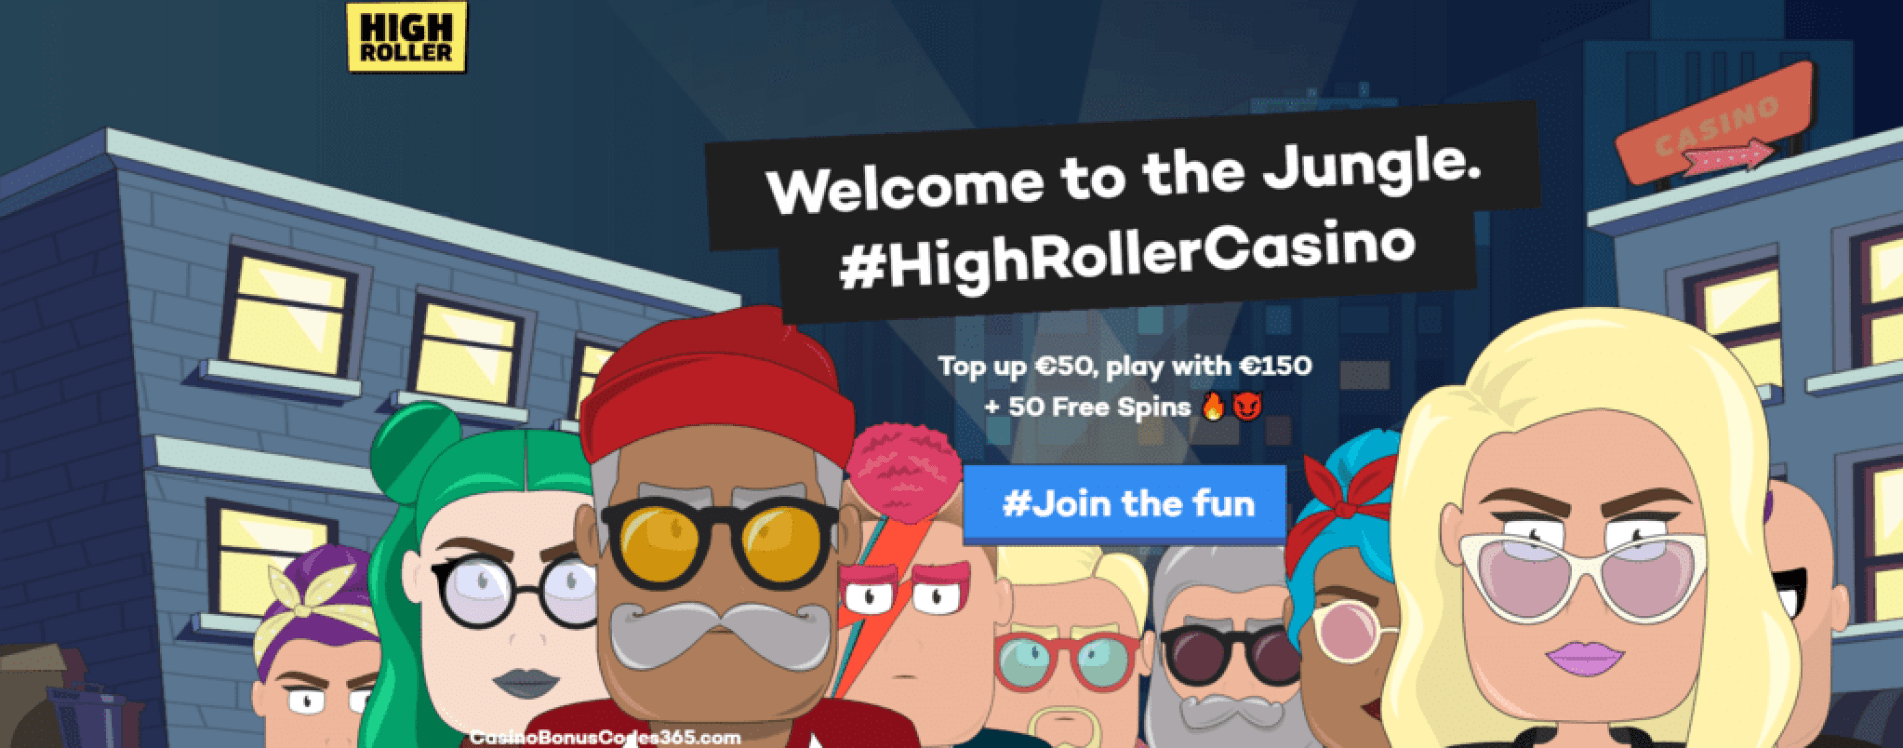 Highroller Casino 200% up to €100 plus 50 Free Spins.